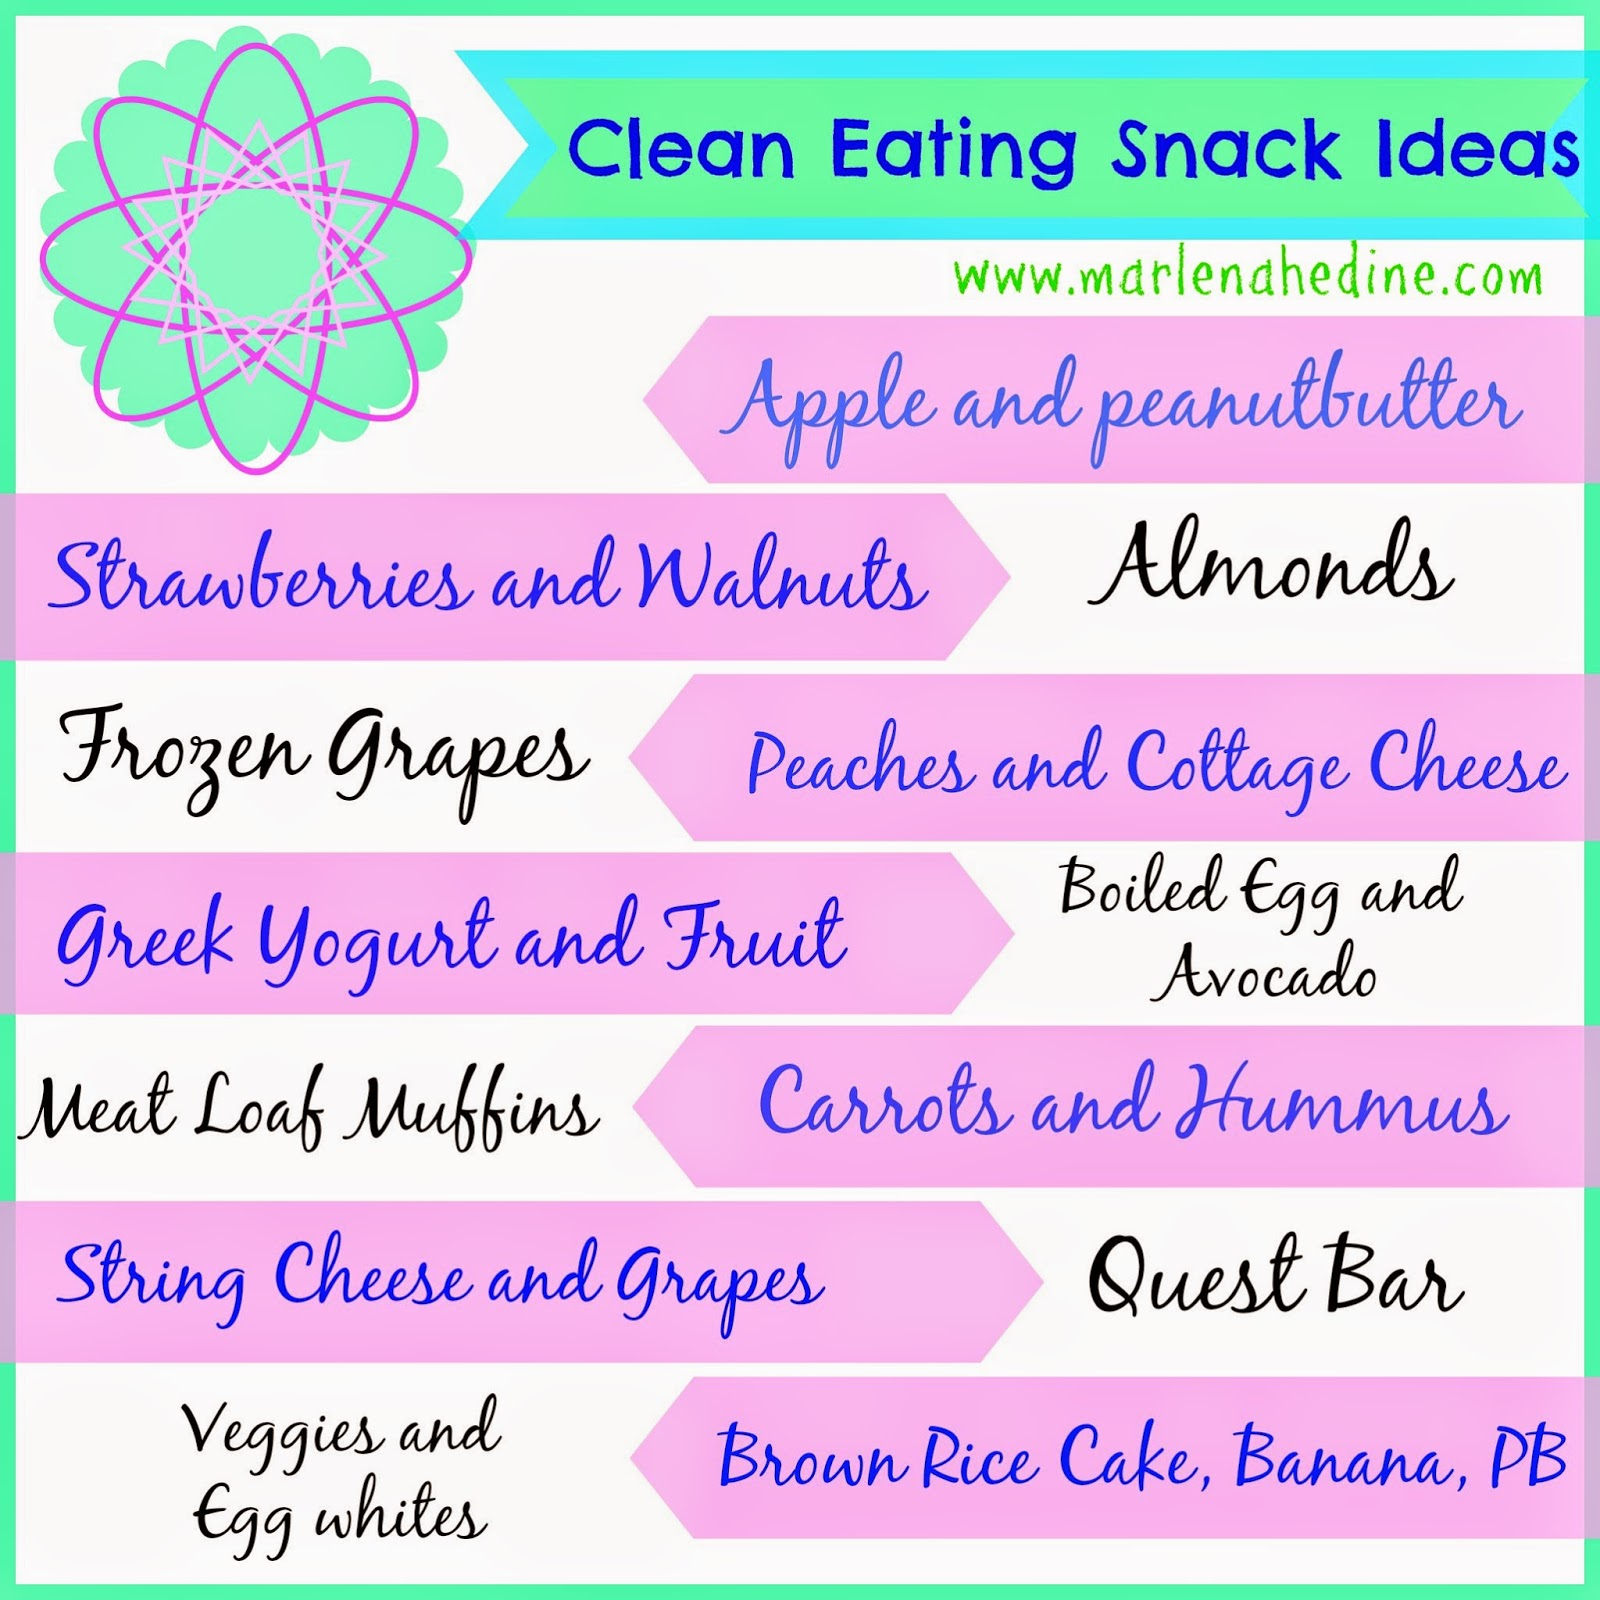 clean eating snack ideas, healthy snacks, snack prepping, snack ideas